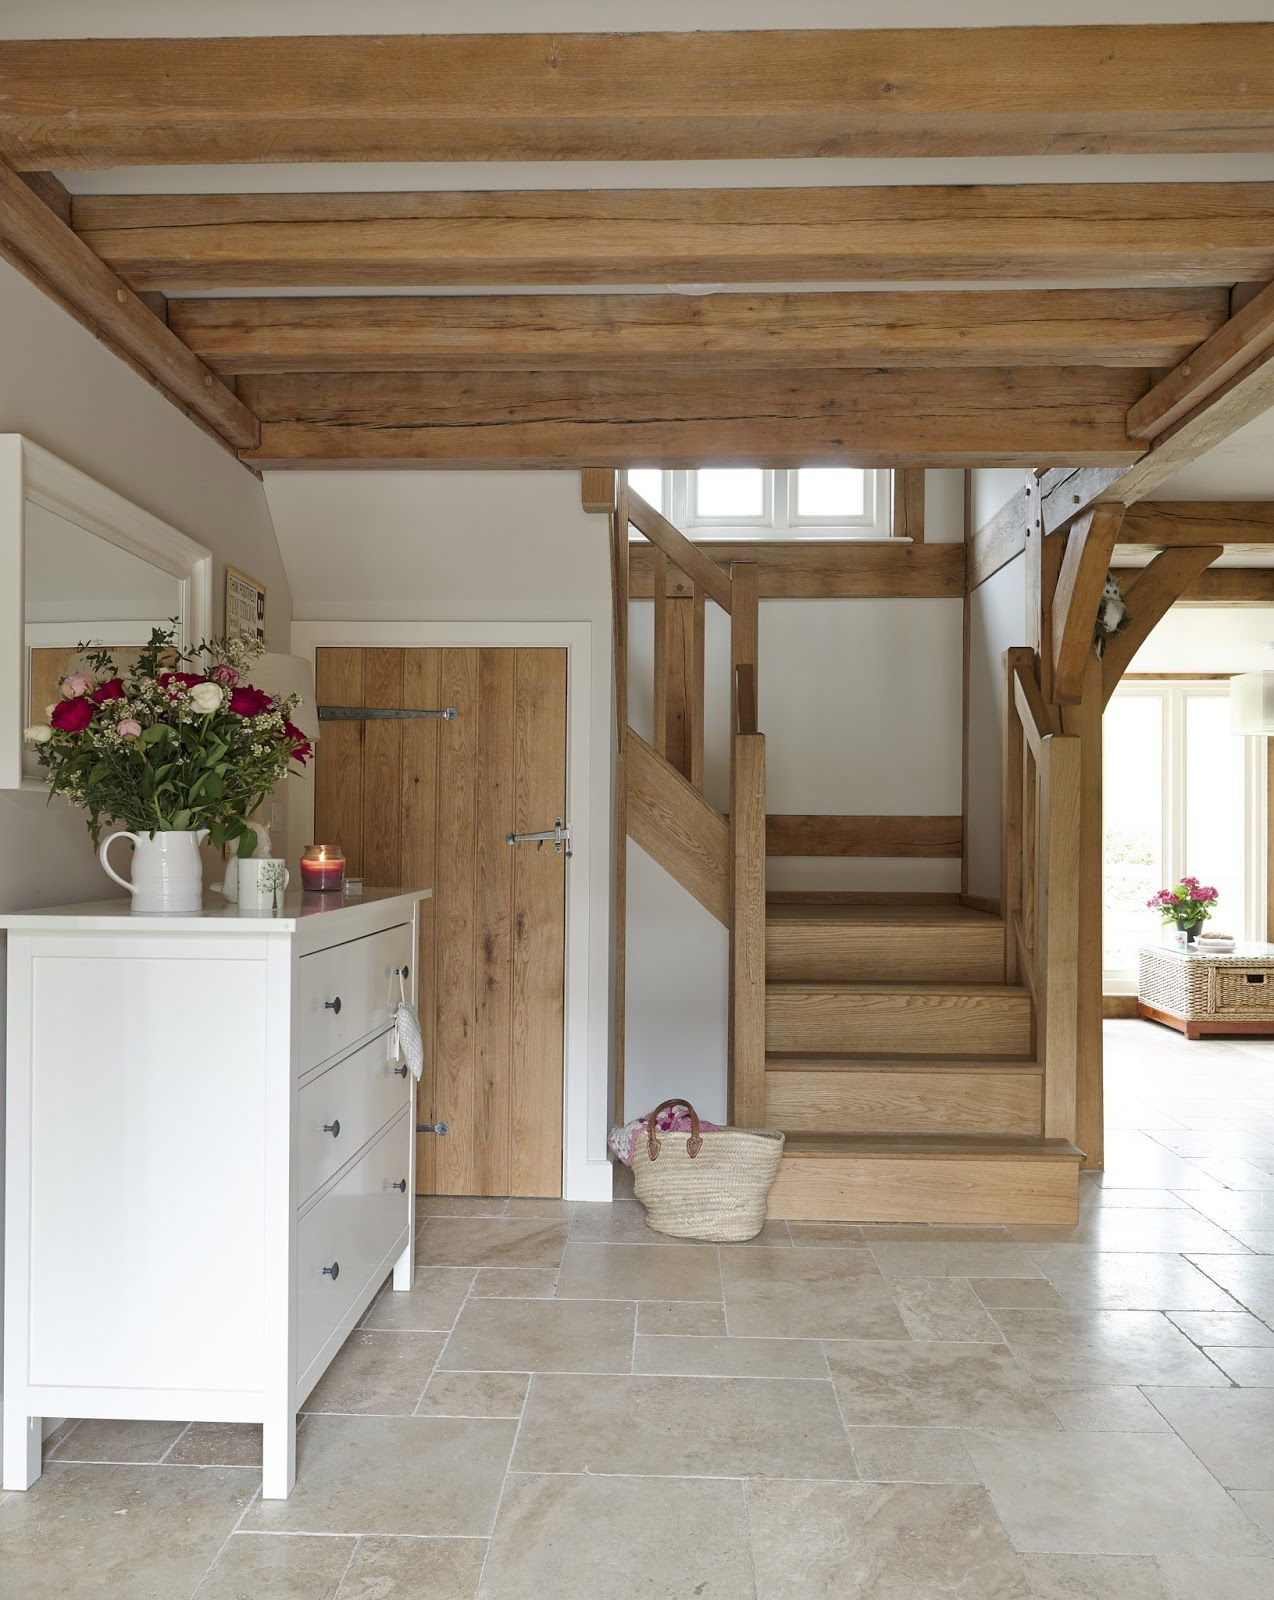 Best Oak Hall And Stairs Tile Floors Cottage Interiors 400 x 300